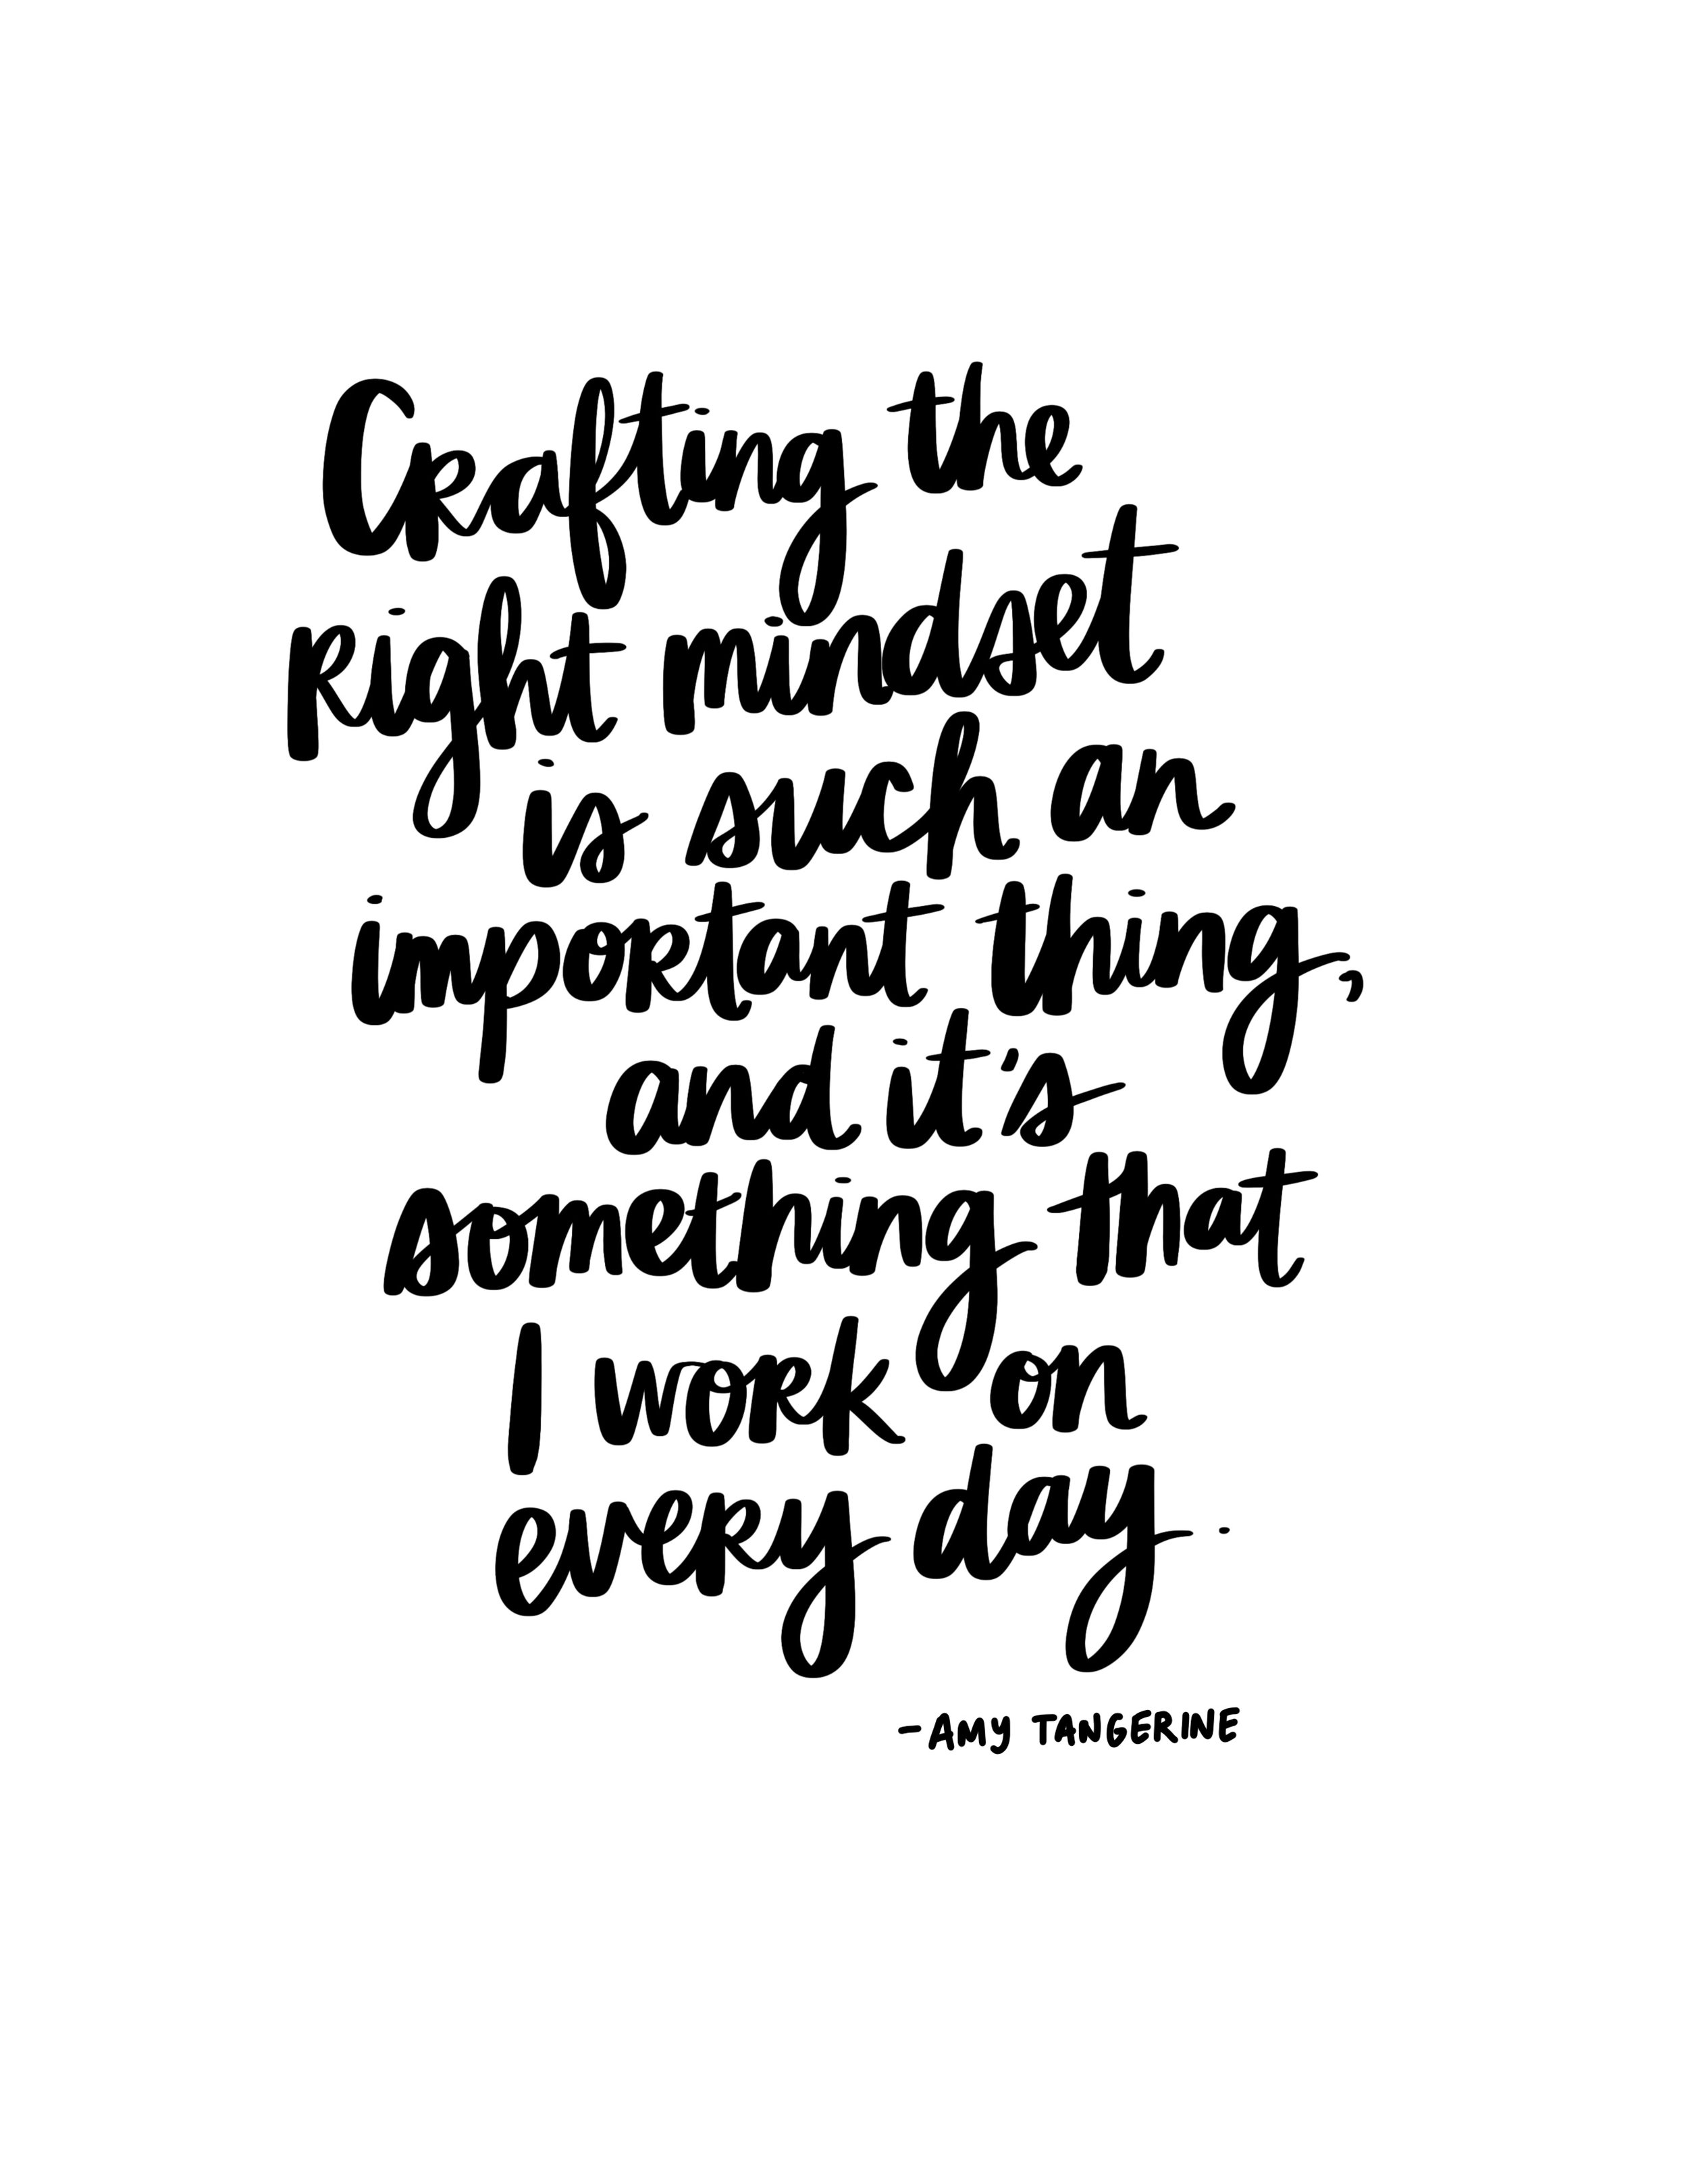 Click   HERE  to download this amazing quote created by Amy Tangerine for the podcast!